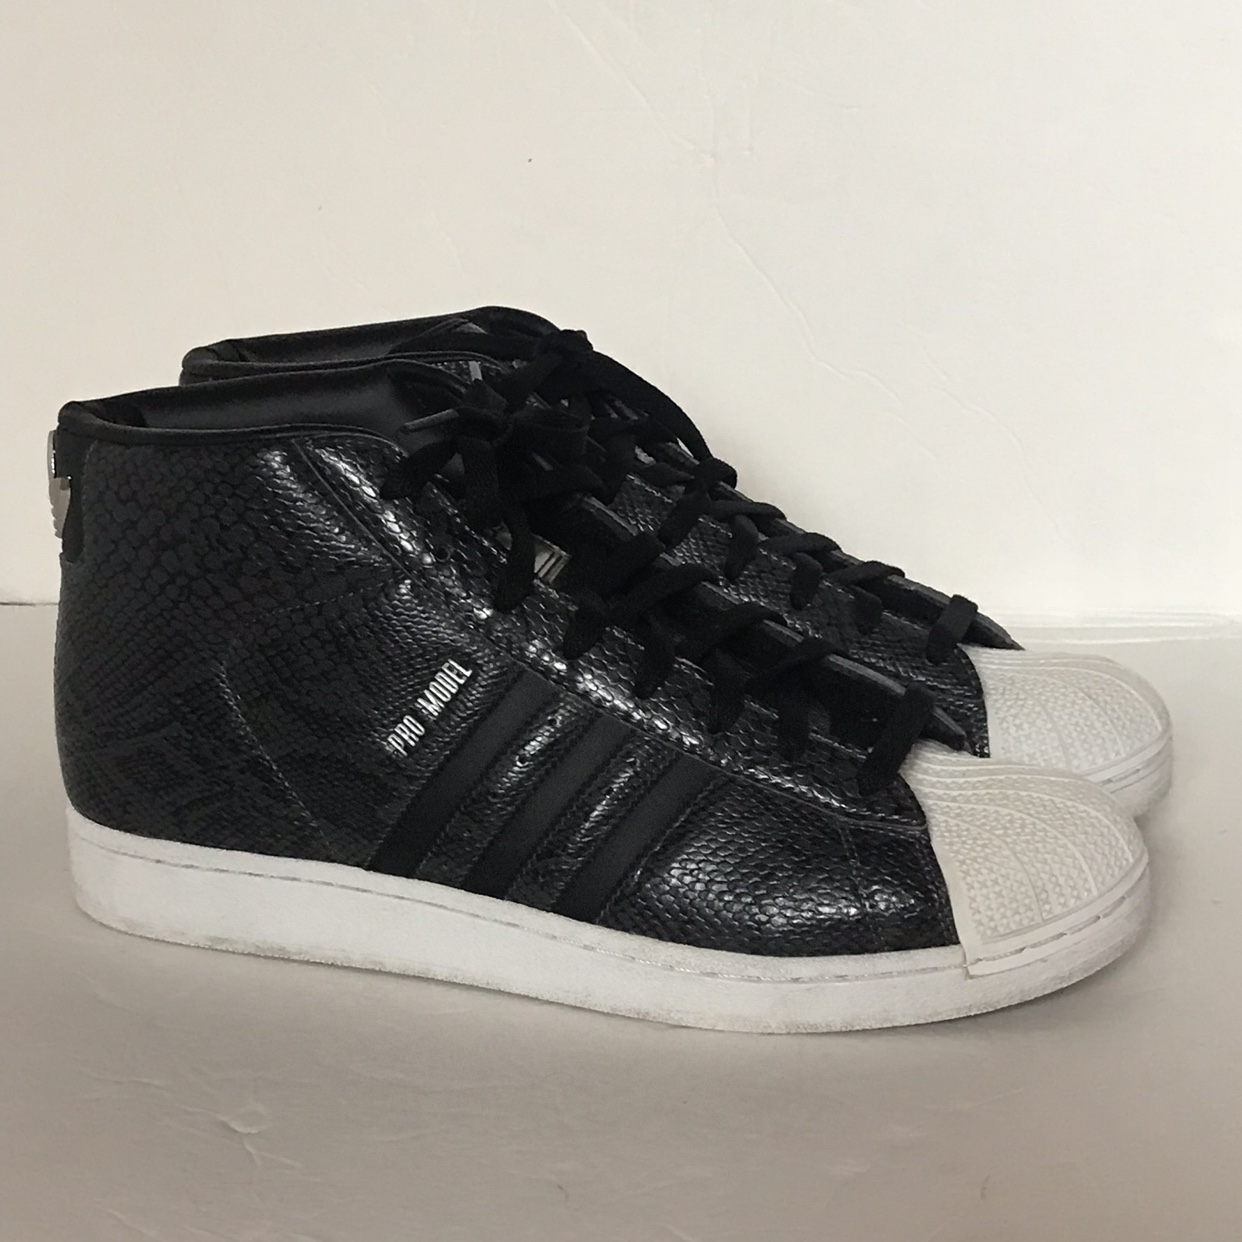 adidas superstar high all black